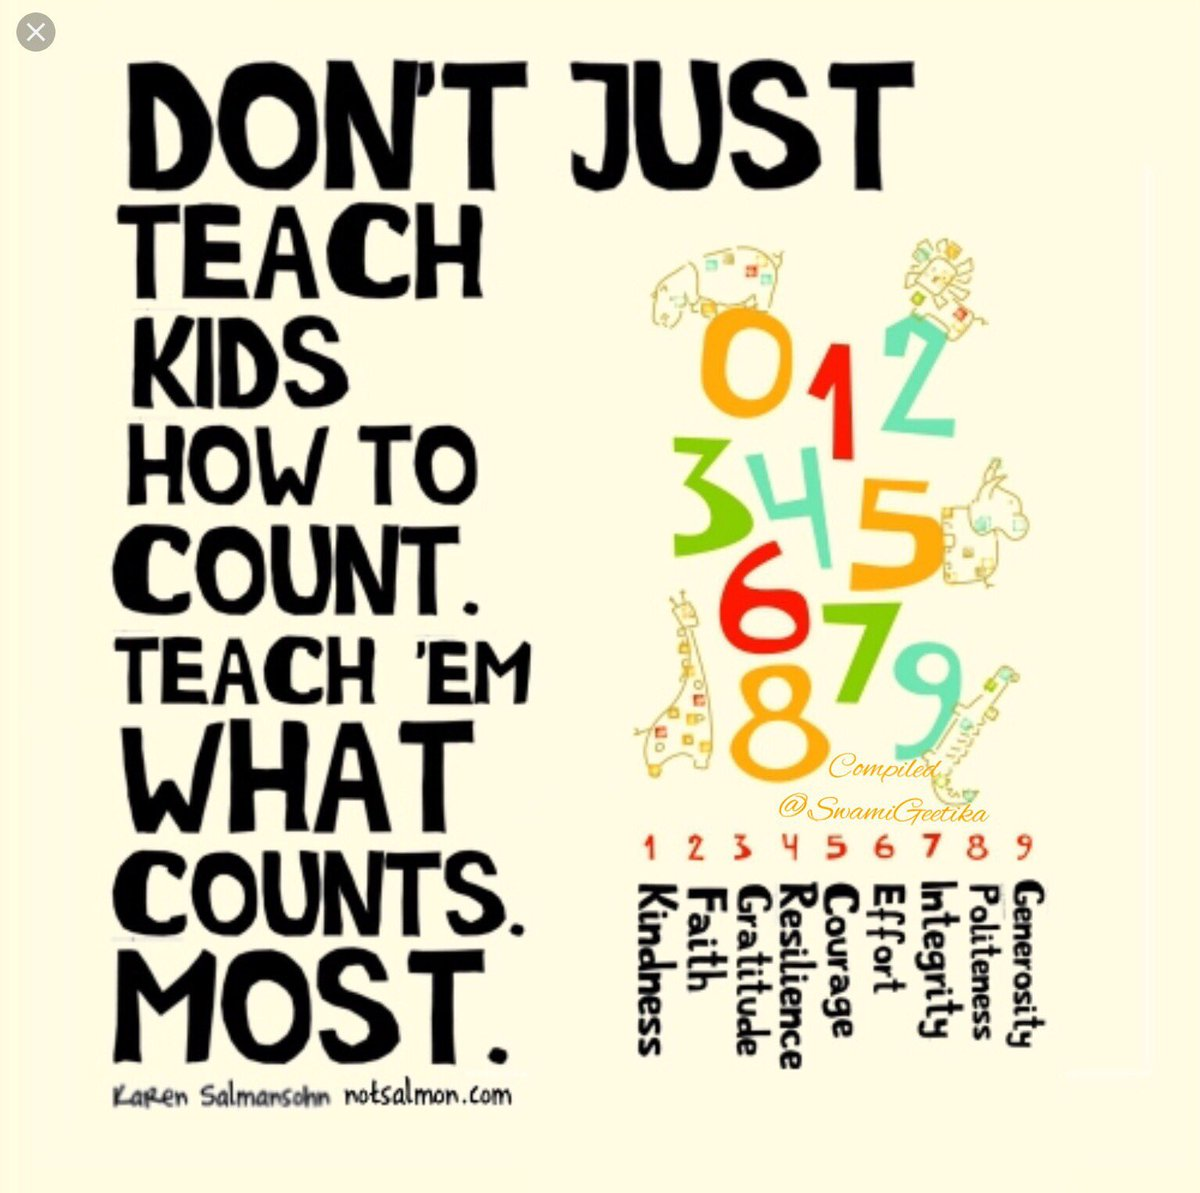 Dont just teach kids how to count, teach them what counts most.   #NationalEducationDay #SaturdayMotivation <br>http://pic.twitter.com/FiQjCJjIKk